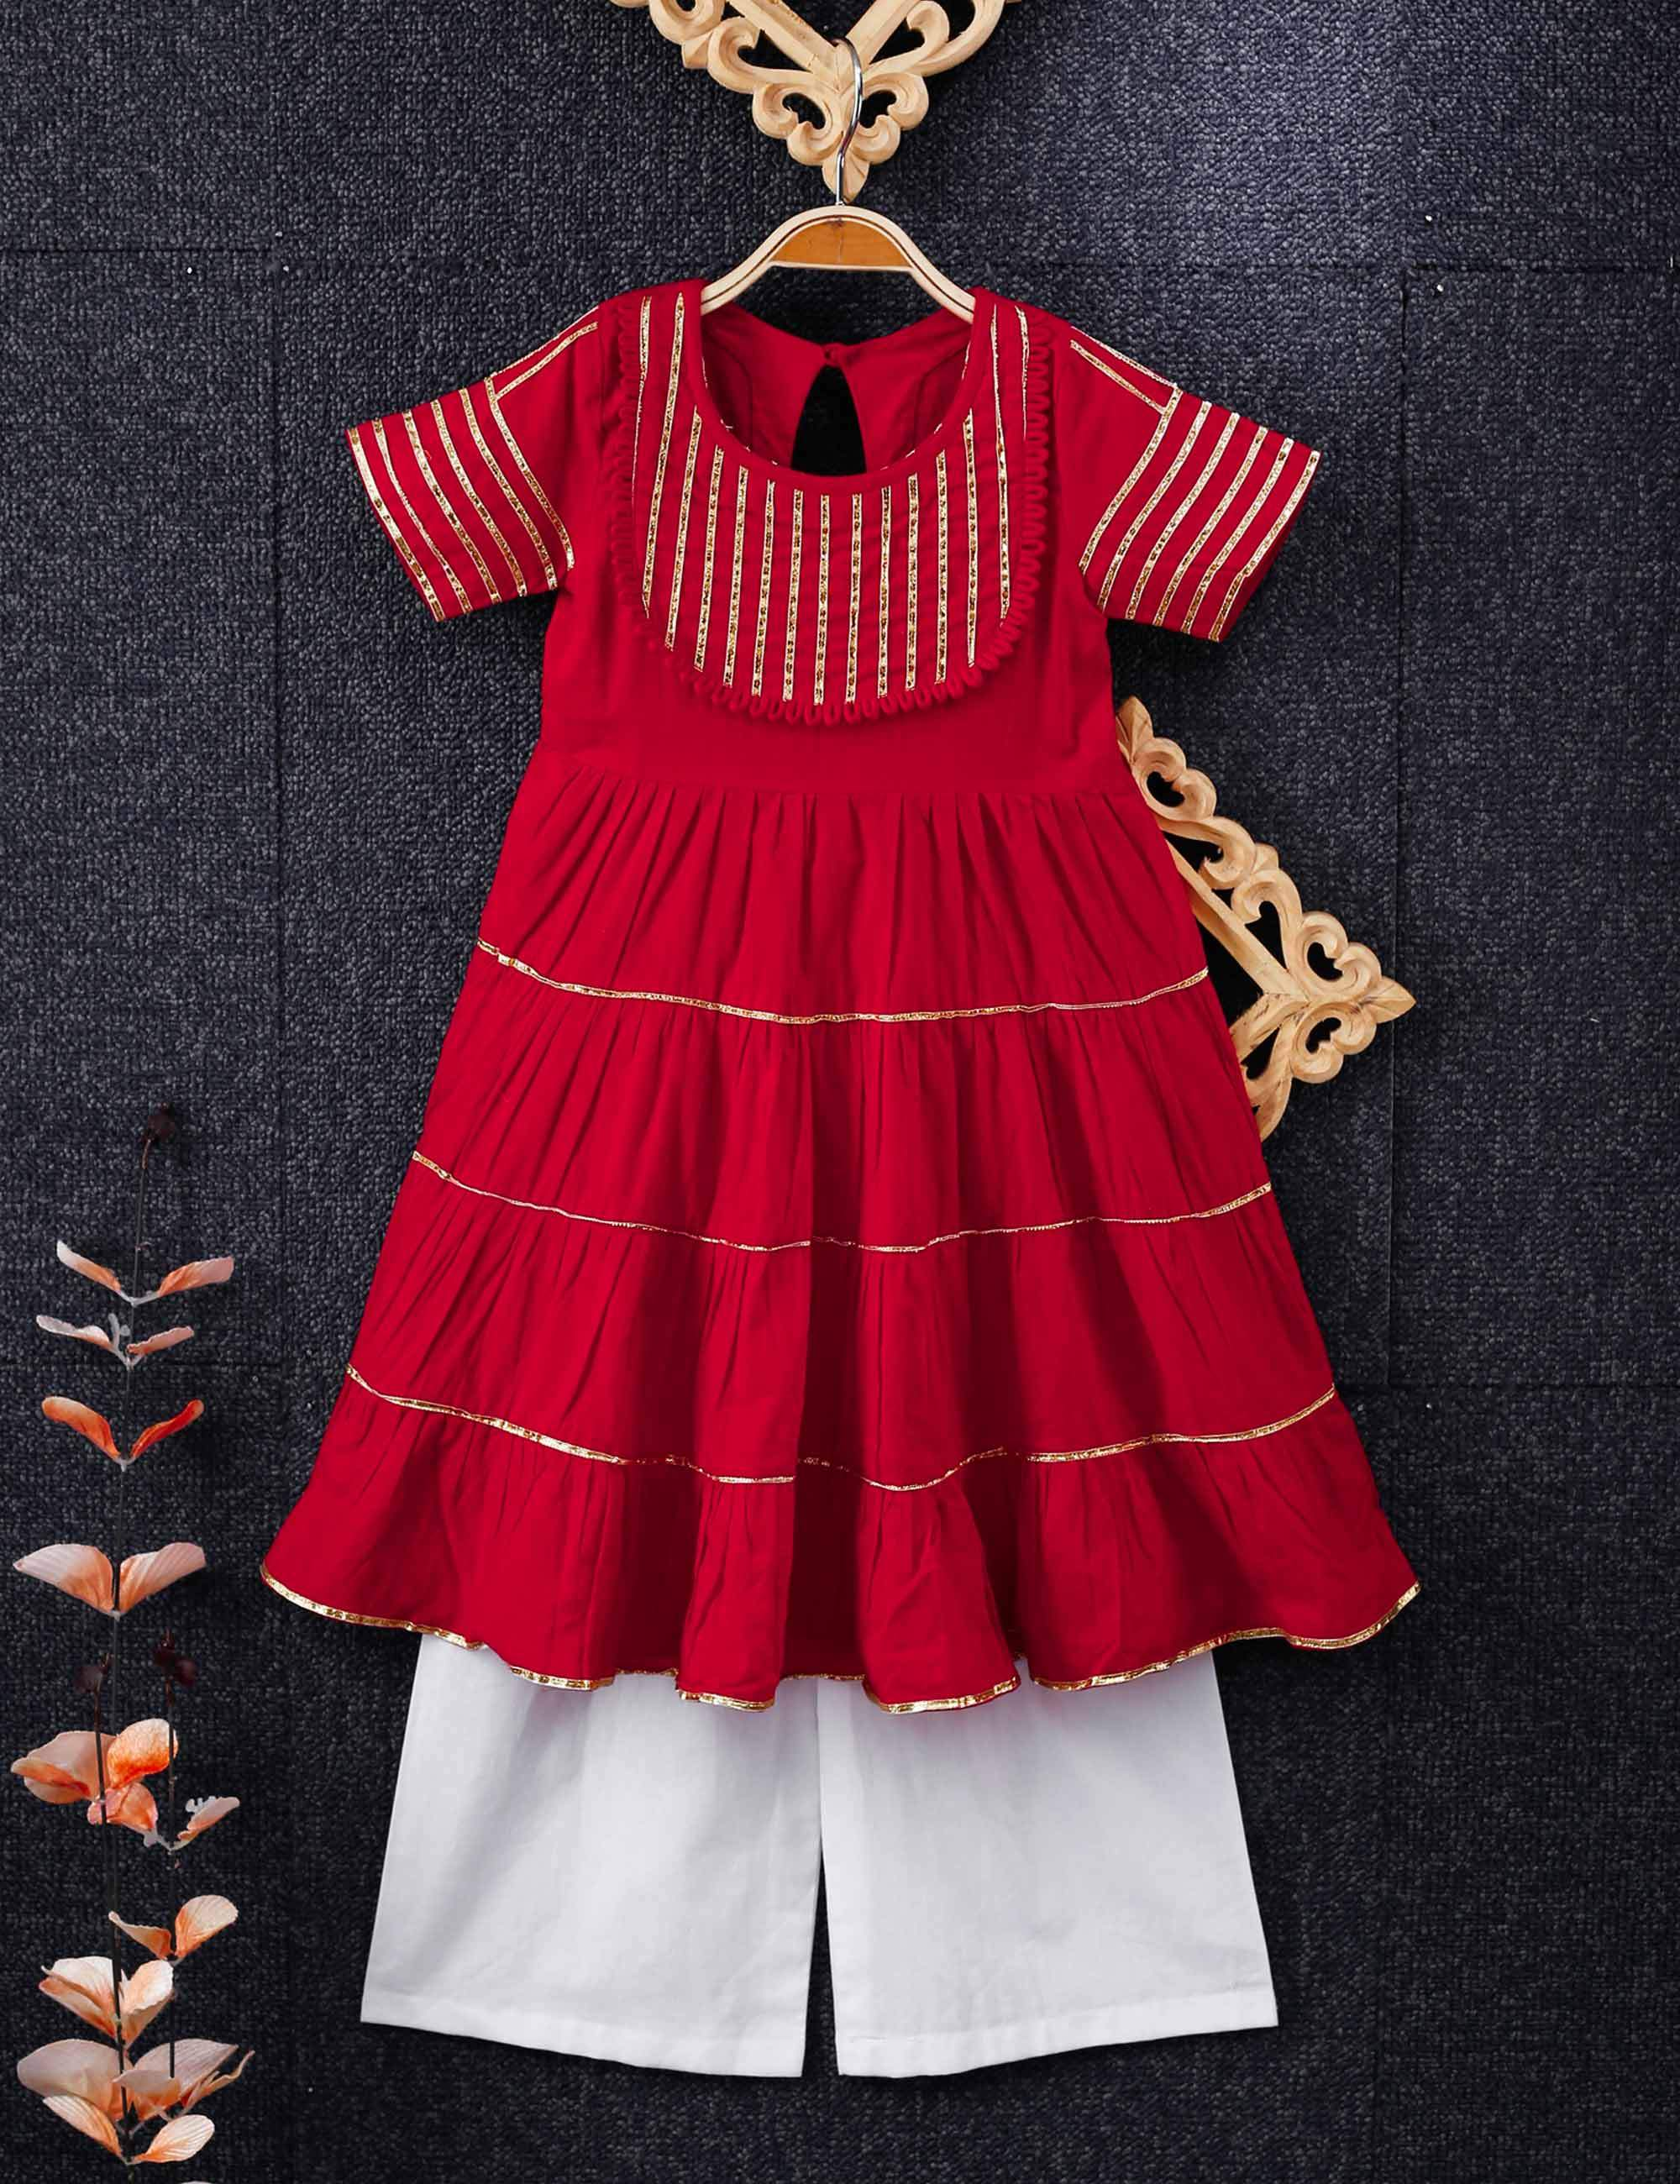 Red Cotton Gota Tier Kurta With White Pants for Girls